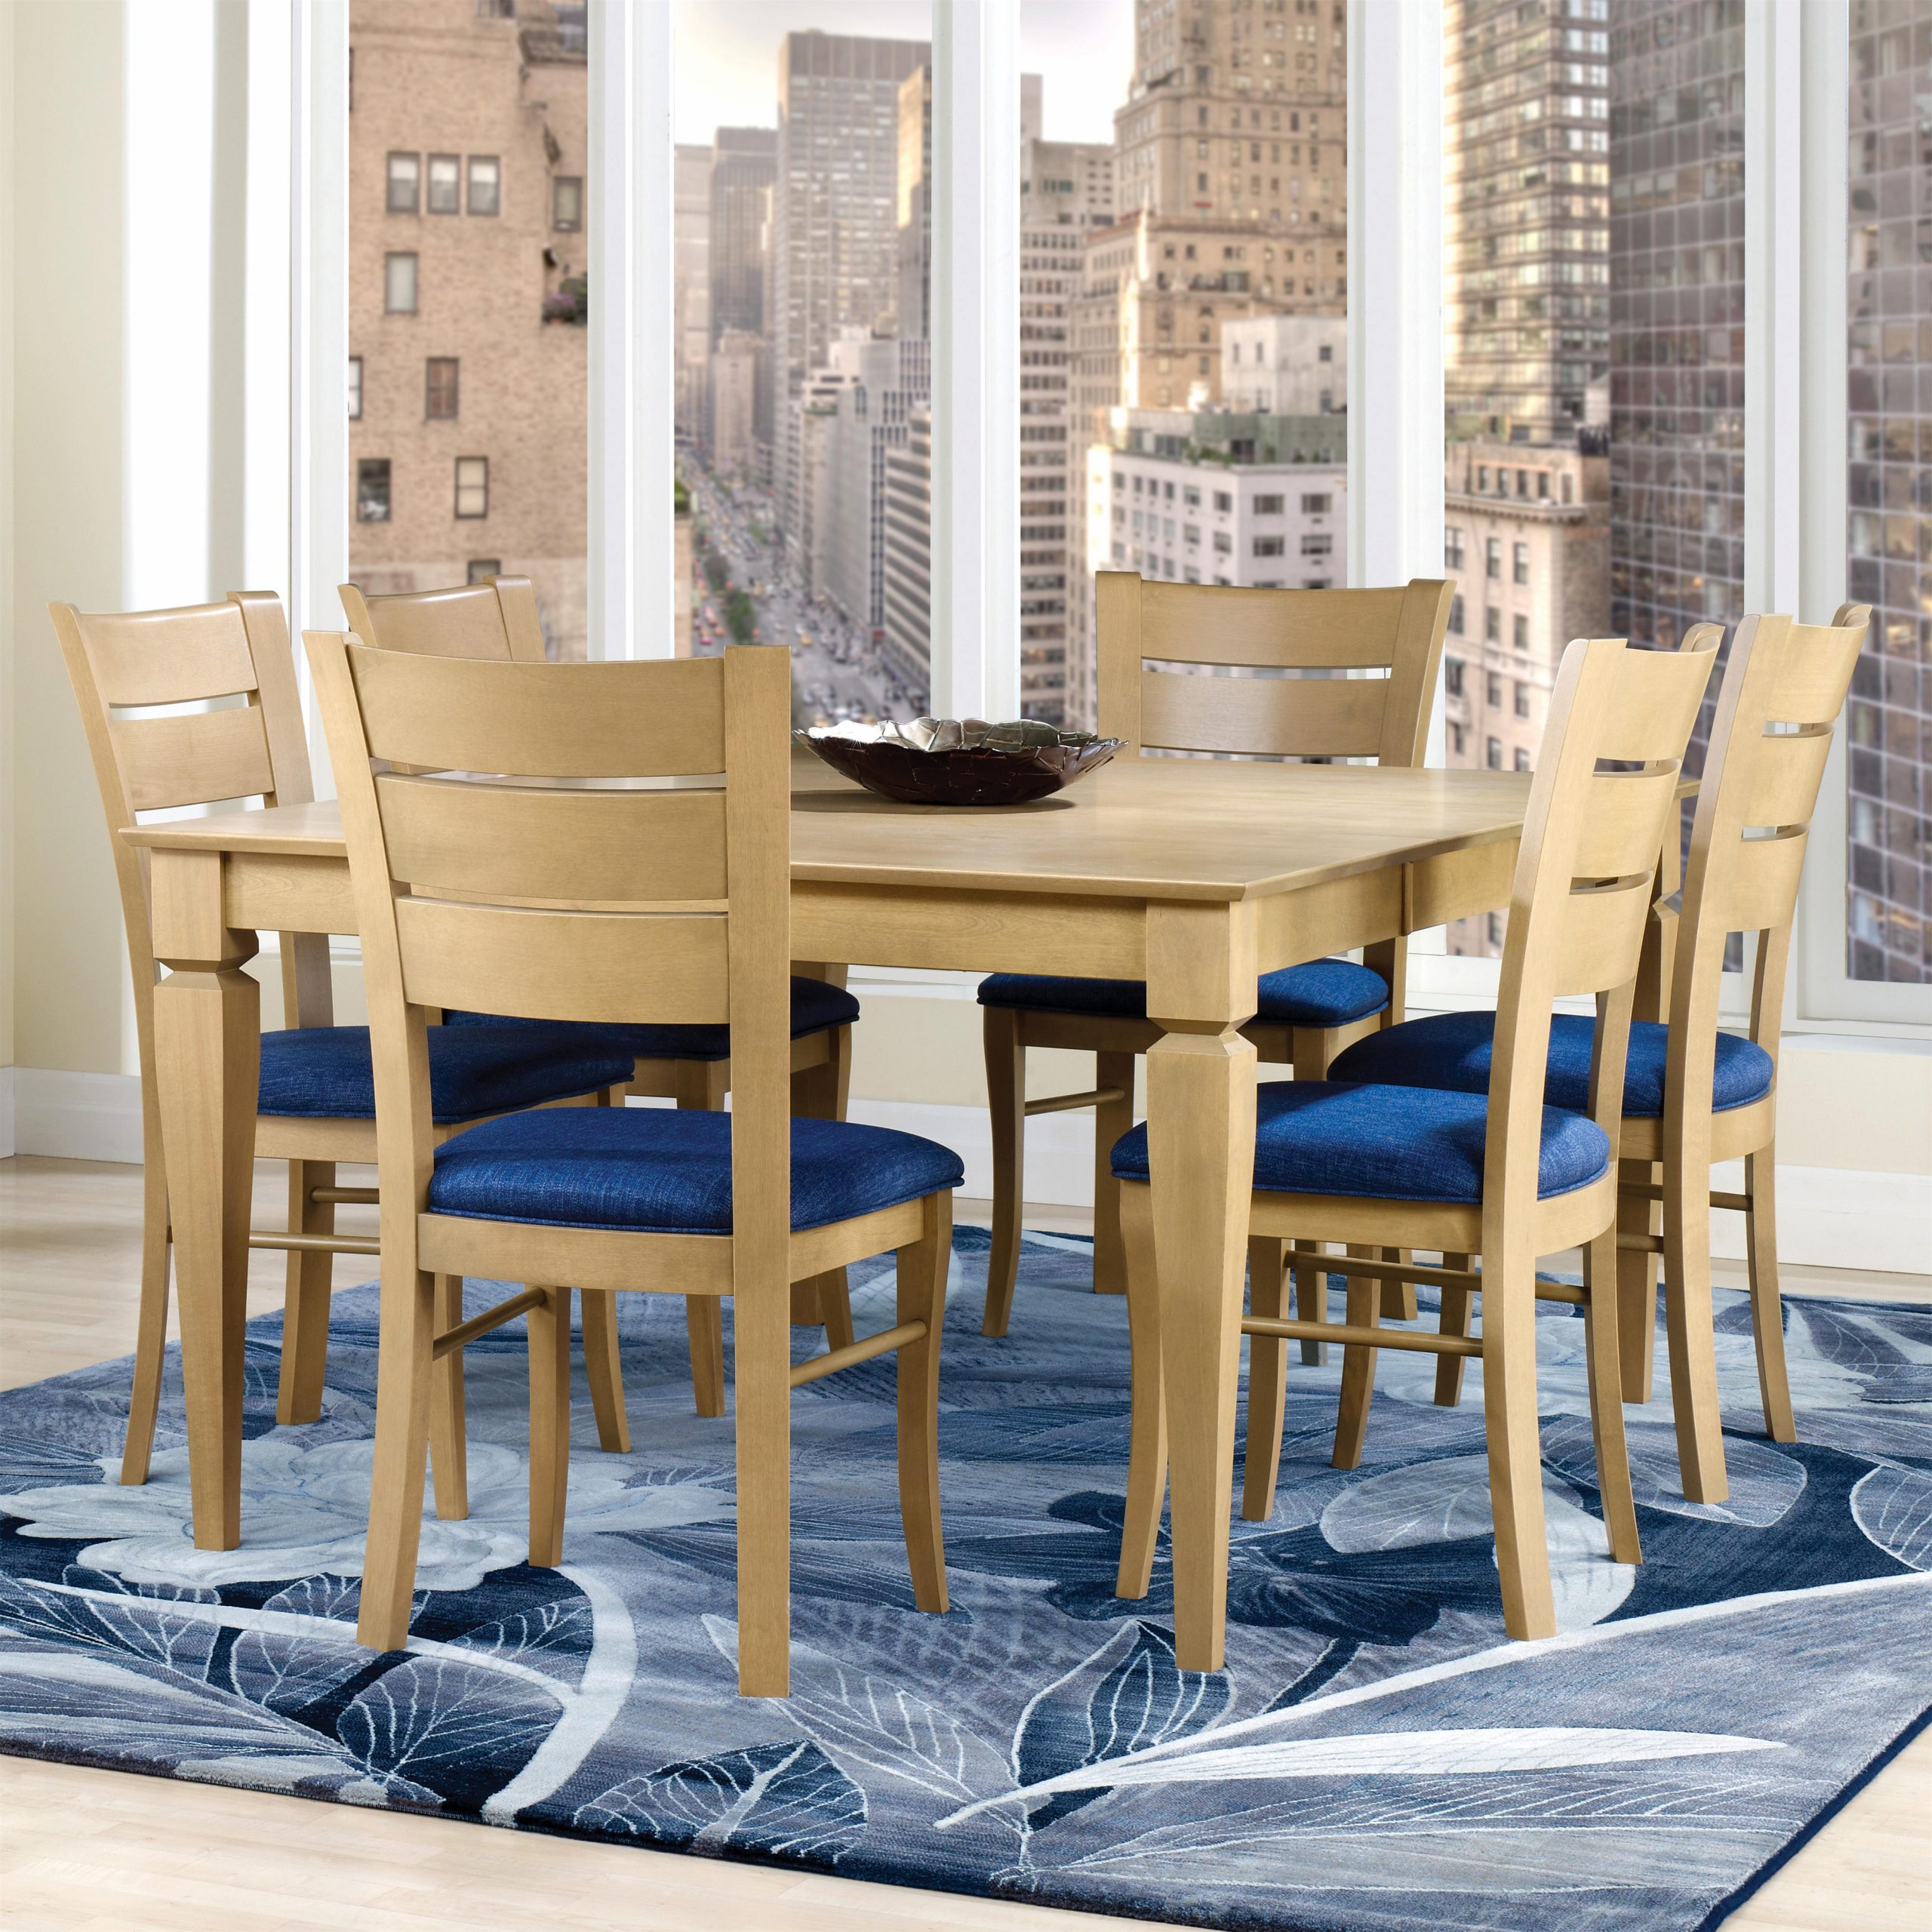 Canadel Custom Dining Customizable Square Table With Leaf For Latest Bistro Transitional 4 Seating Square Dining Tables (Gallery 21 of 30)